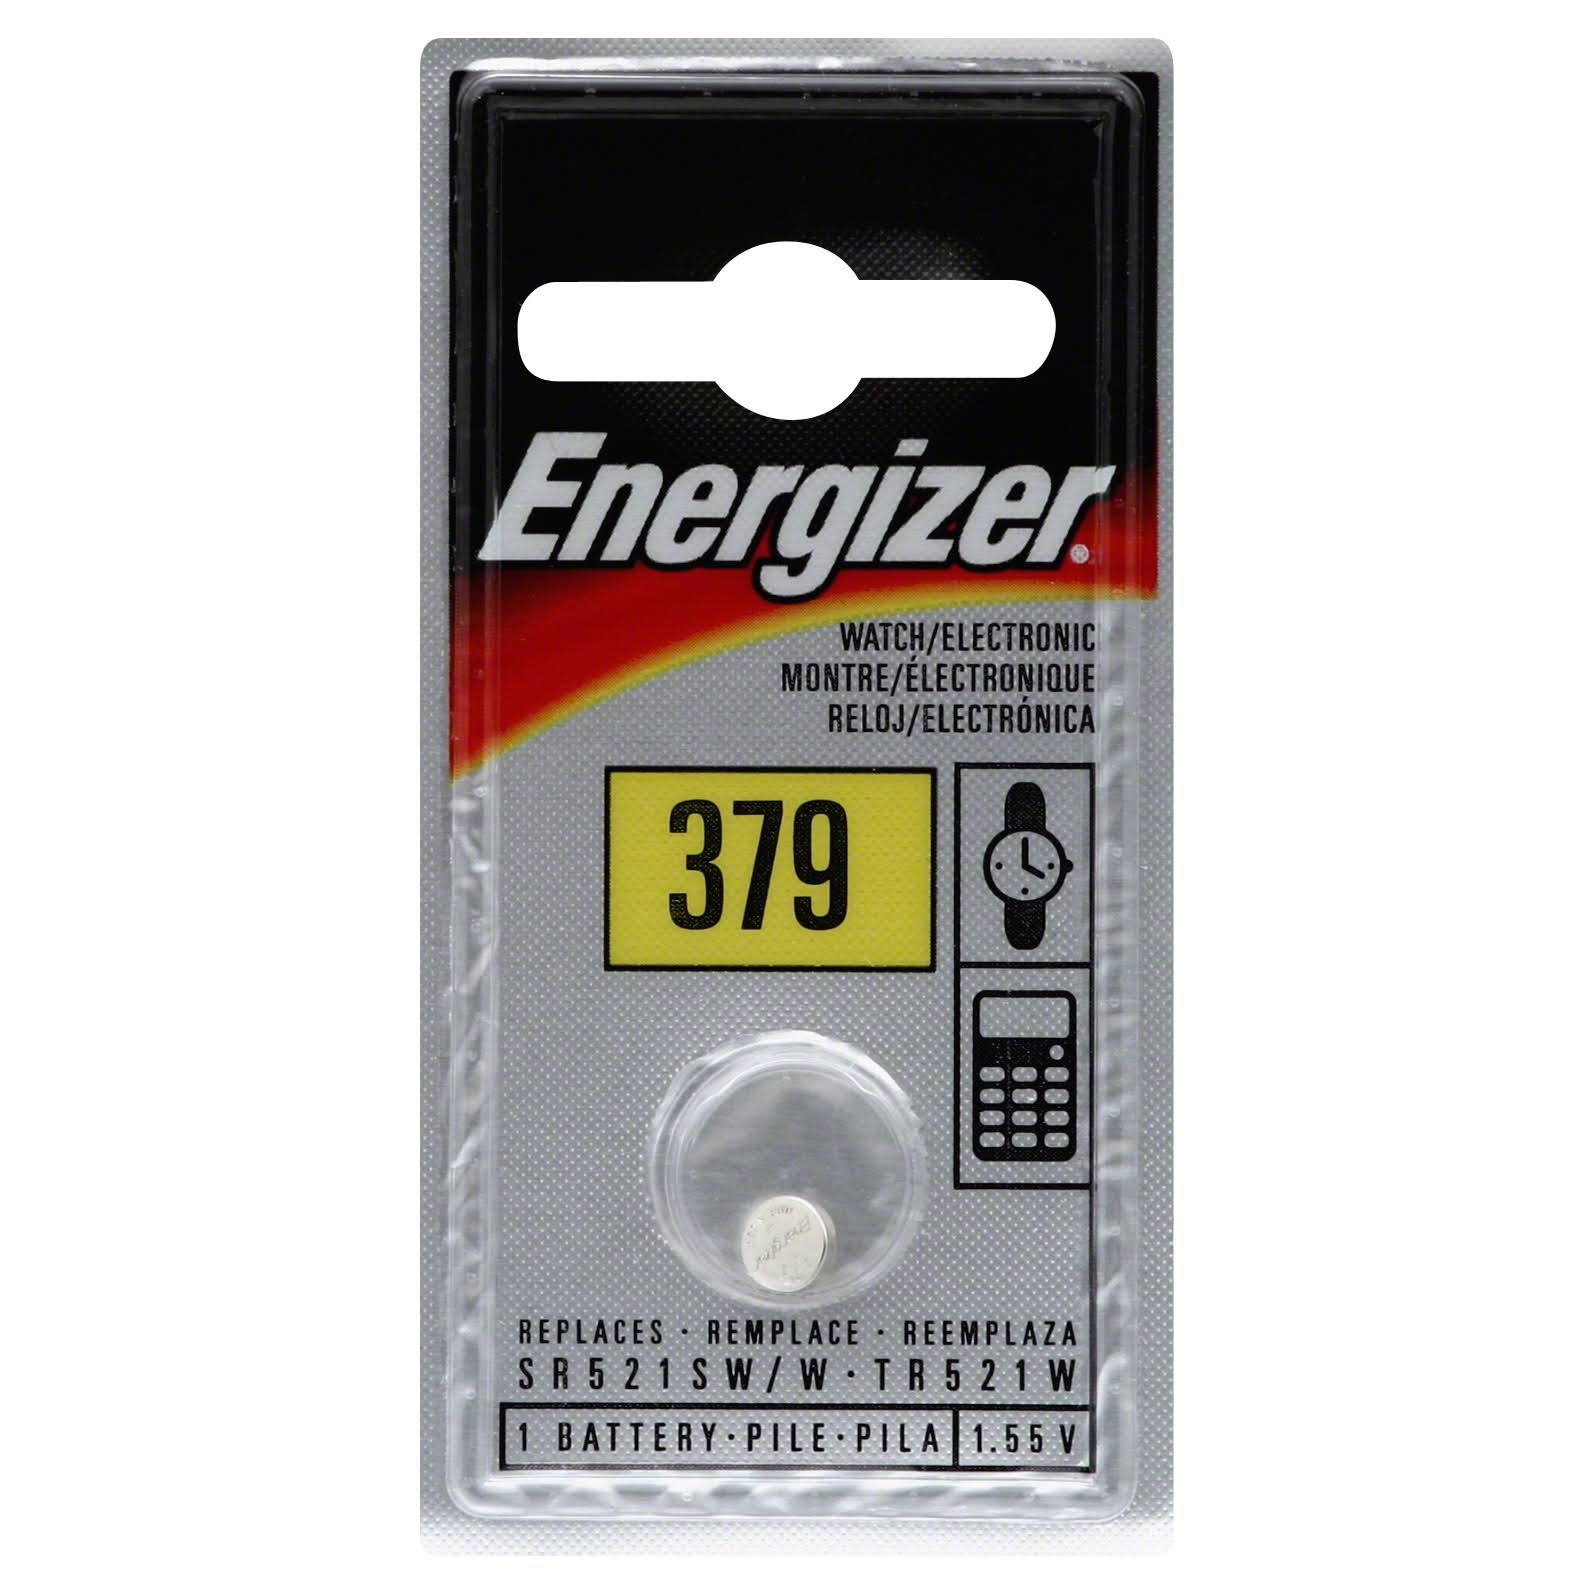 Energizer Watch Battery - 1.55V